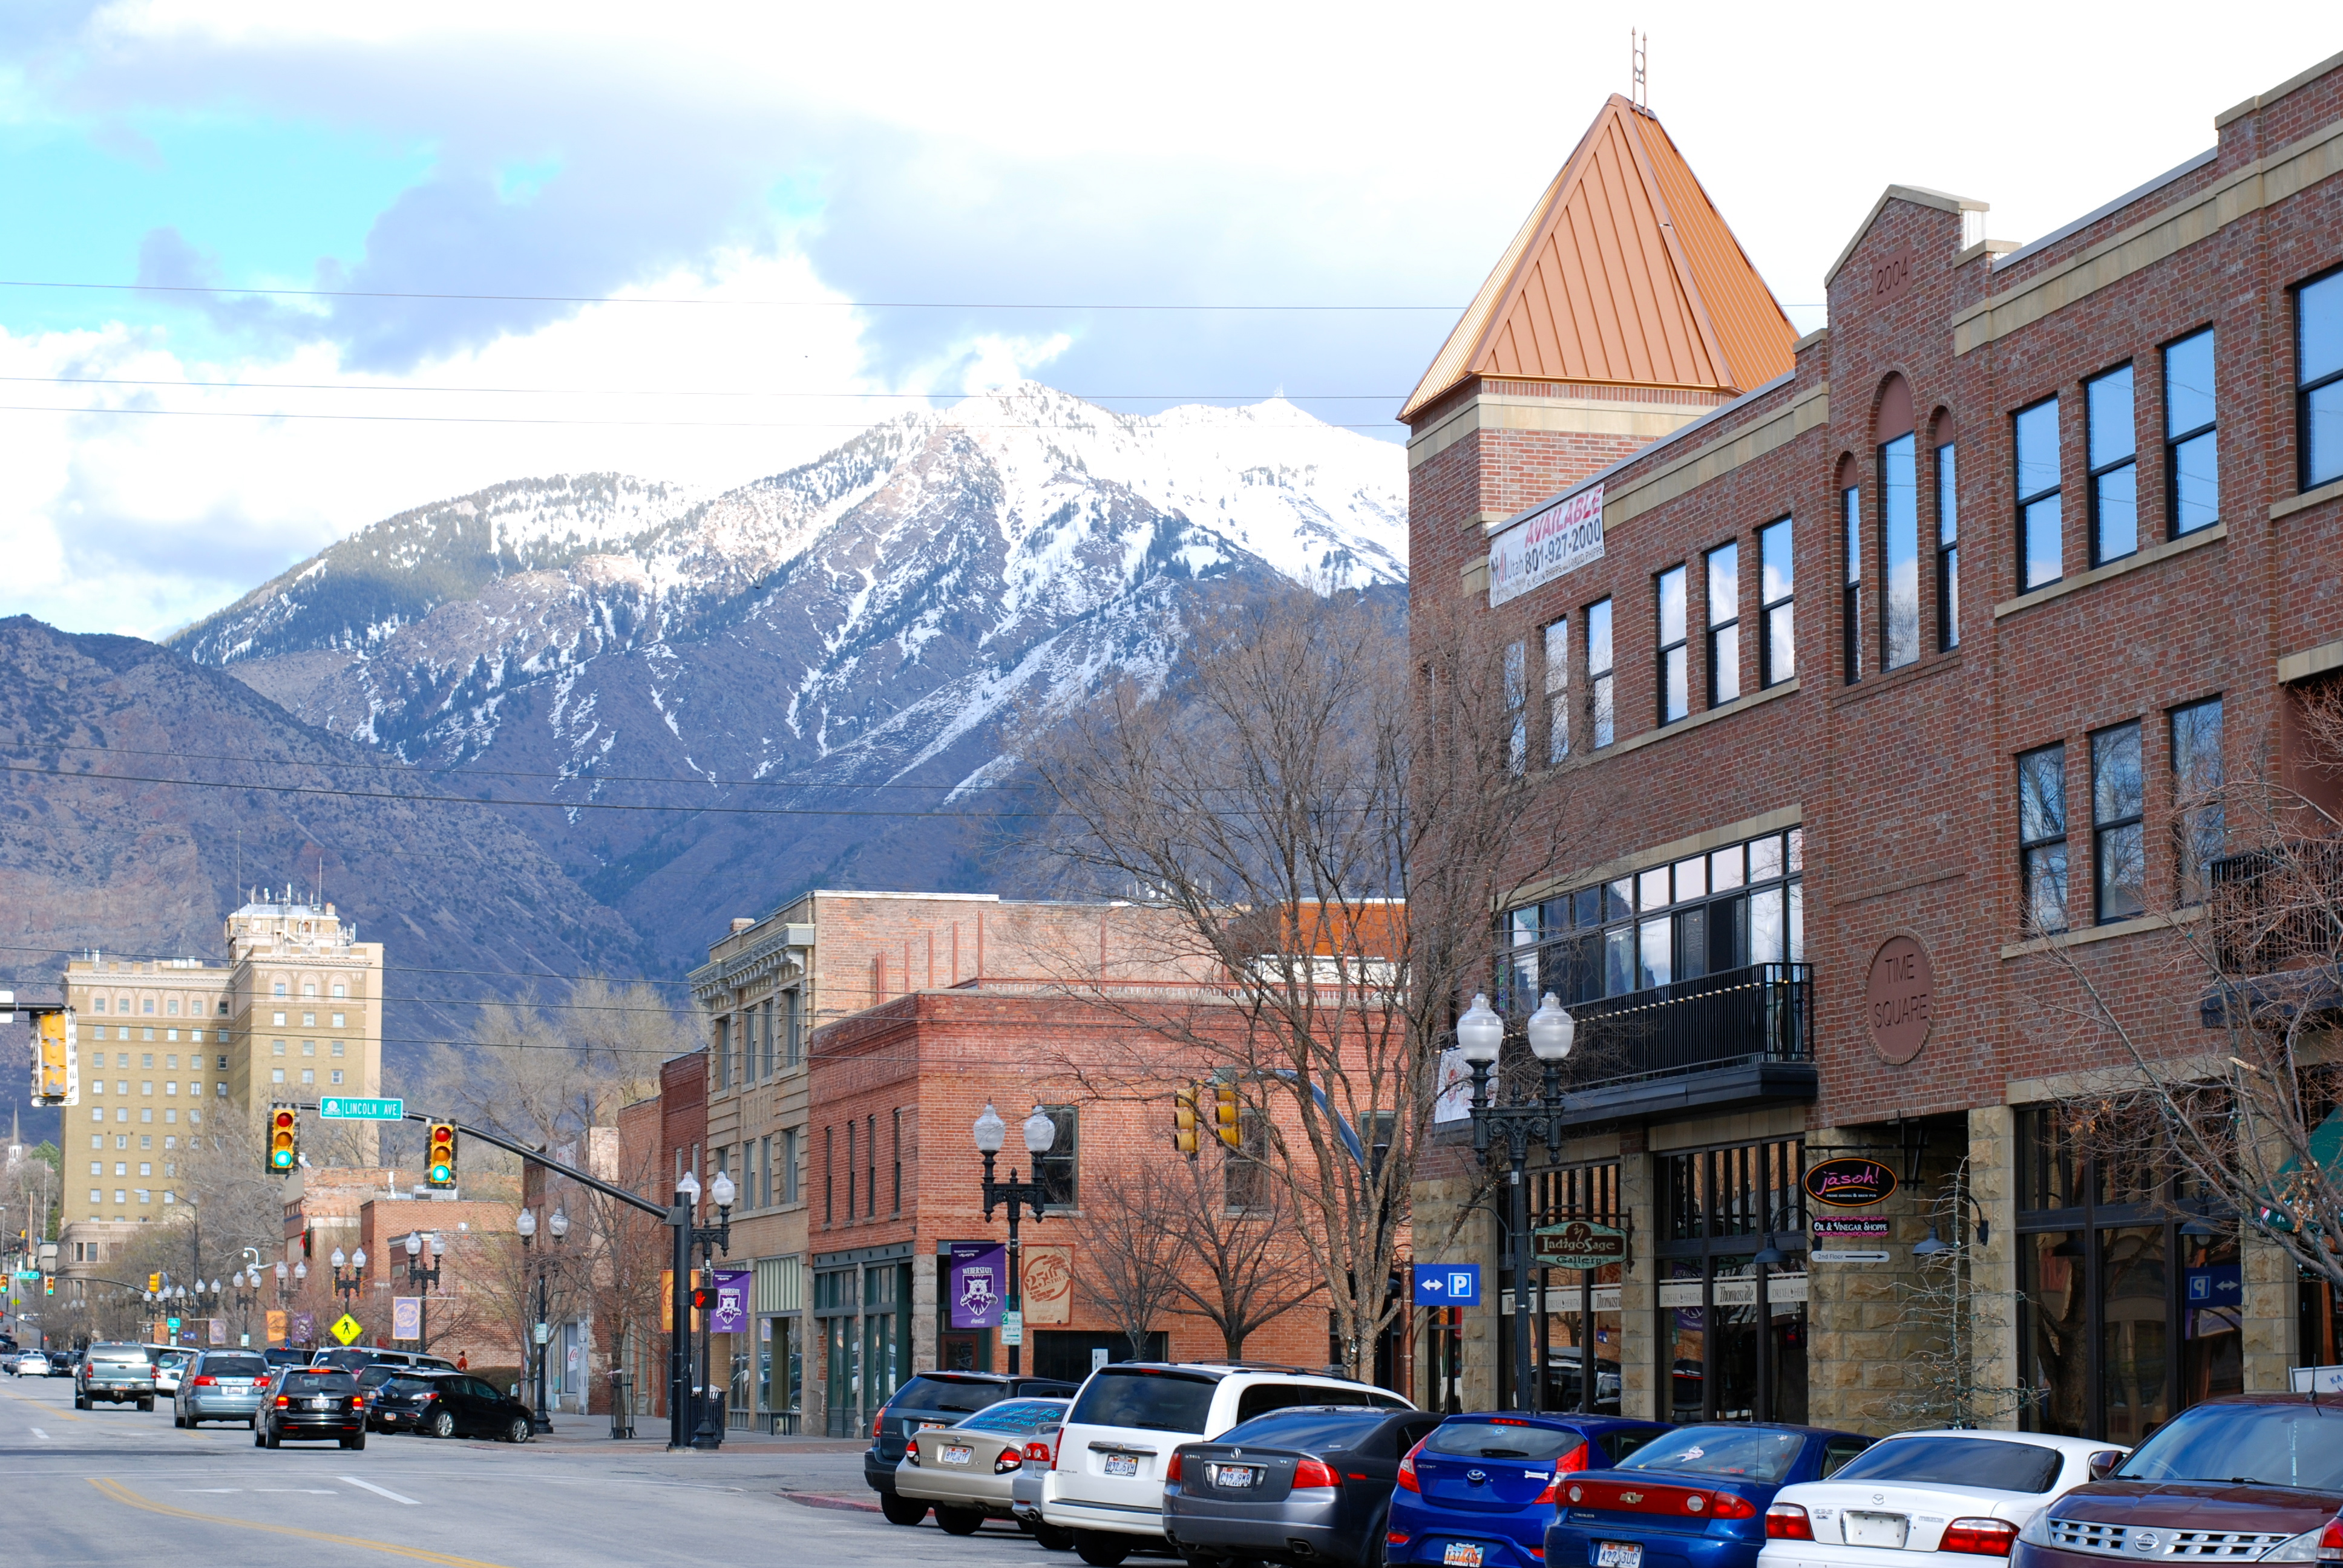 Book your tickets online for the top things to do in Ogden, Utah on TripAdvisor: See 2, traveler reviews and photos of Ogden tourist attractions. Find what to do today, this weekend, or in October. We have reviews of the best places to see in Ogden. Visit top-rated & must-see attractions.